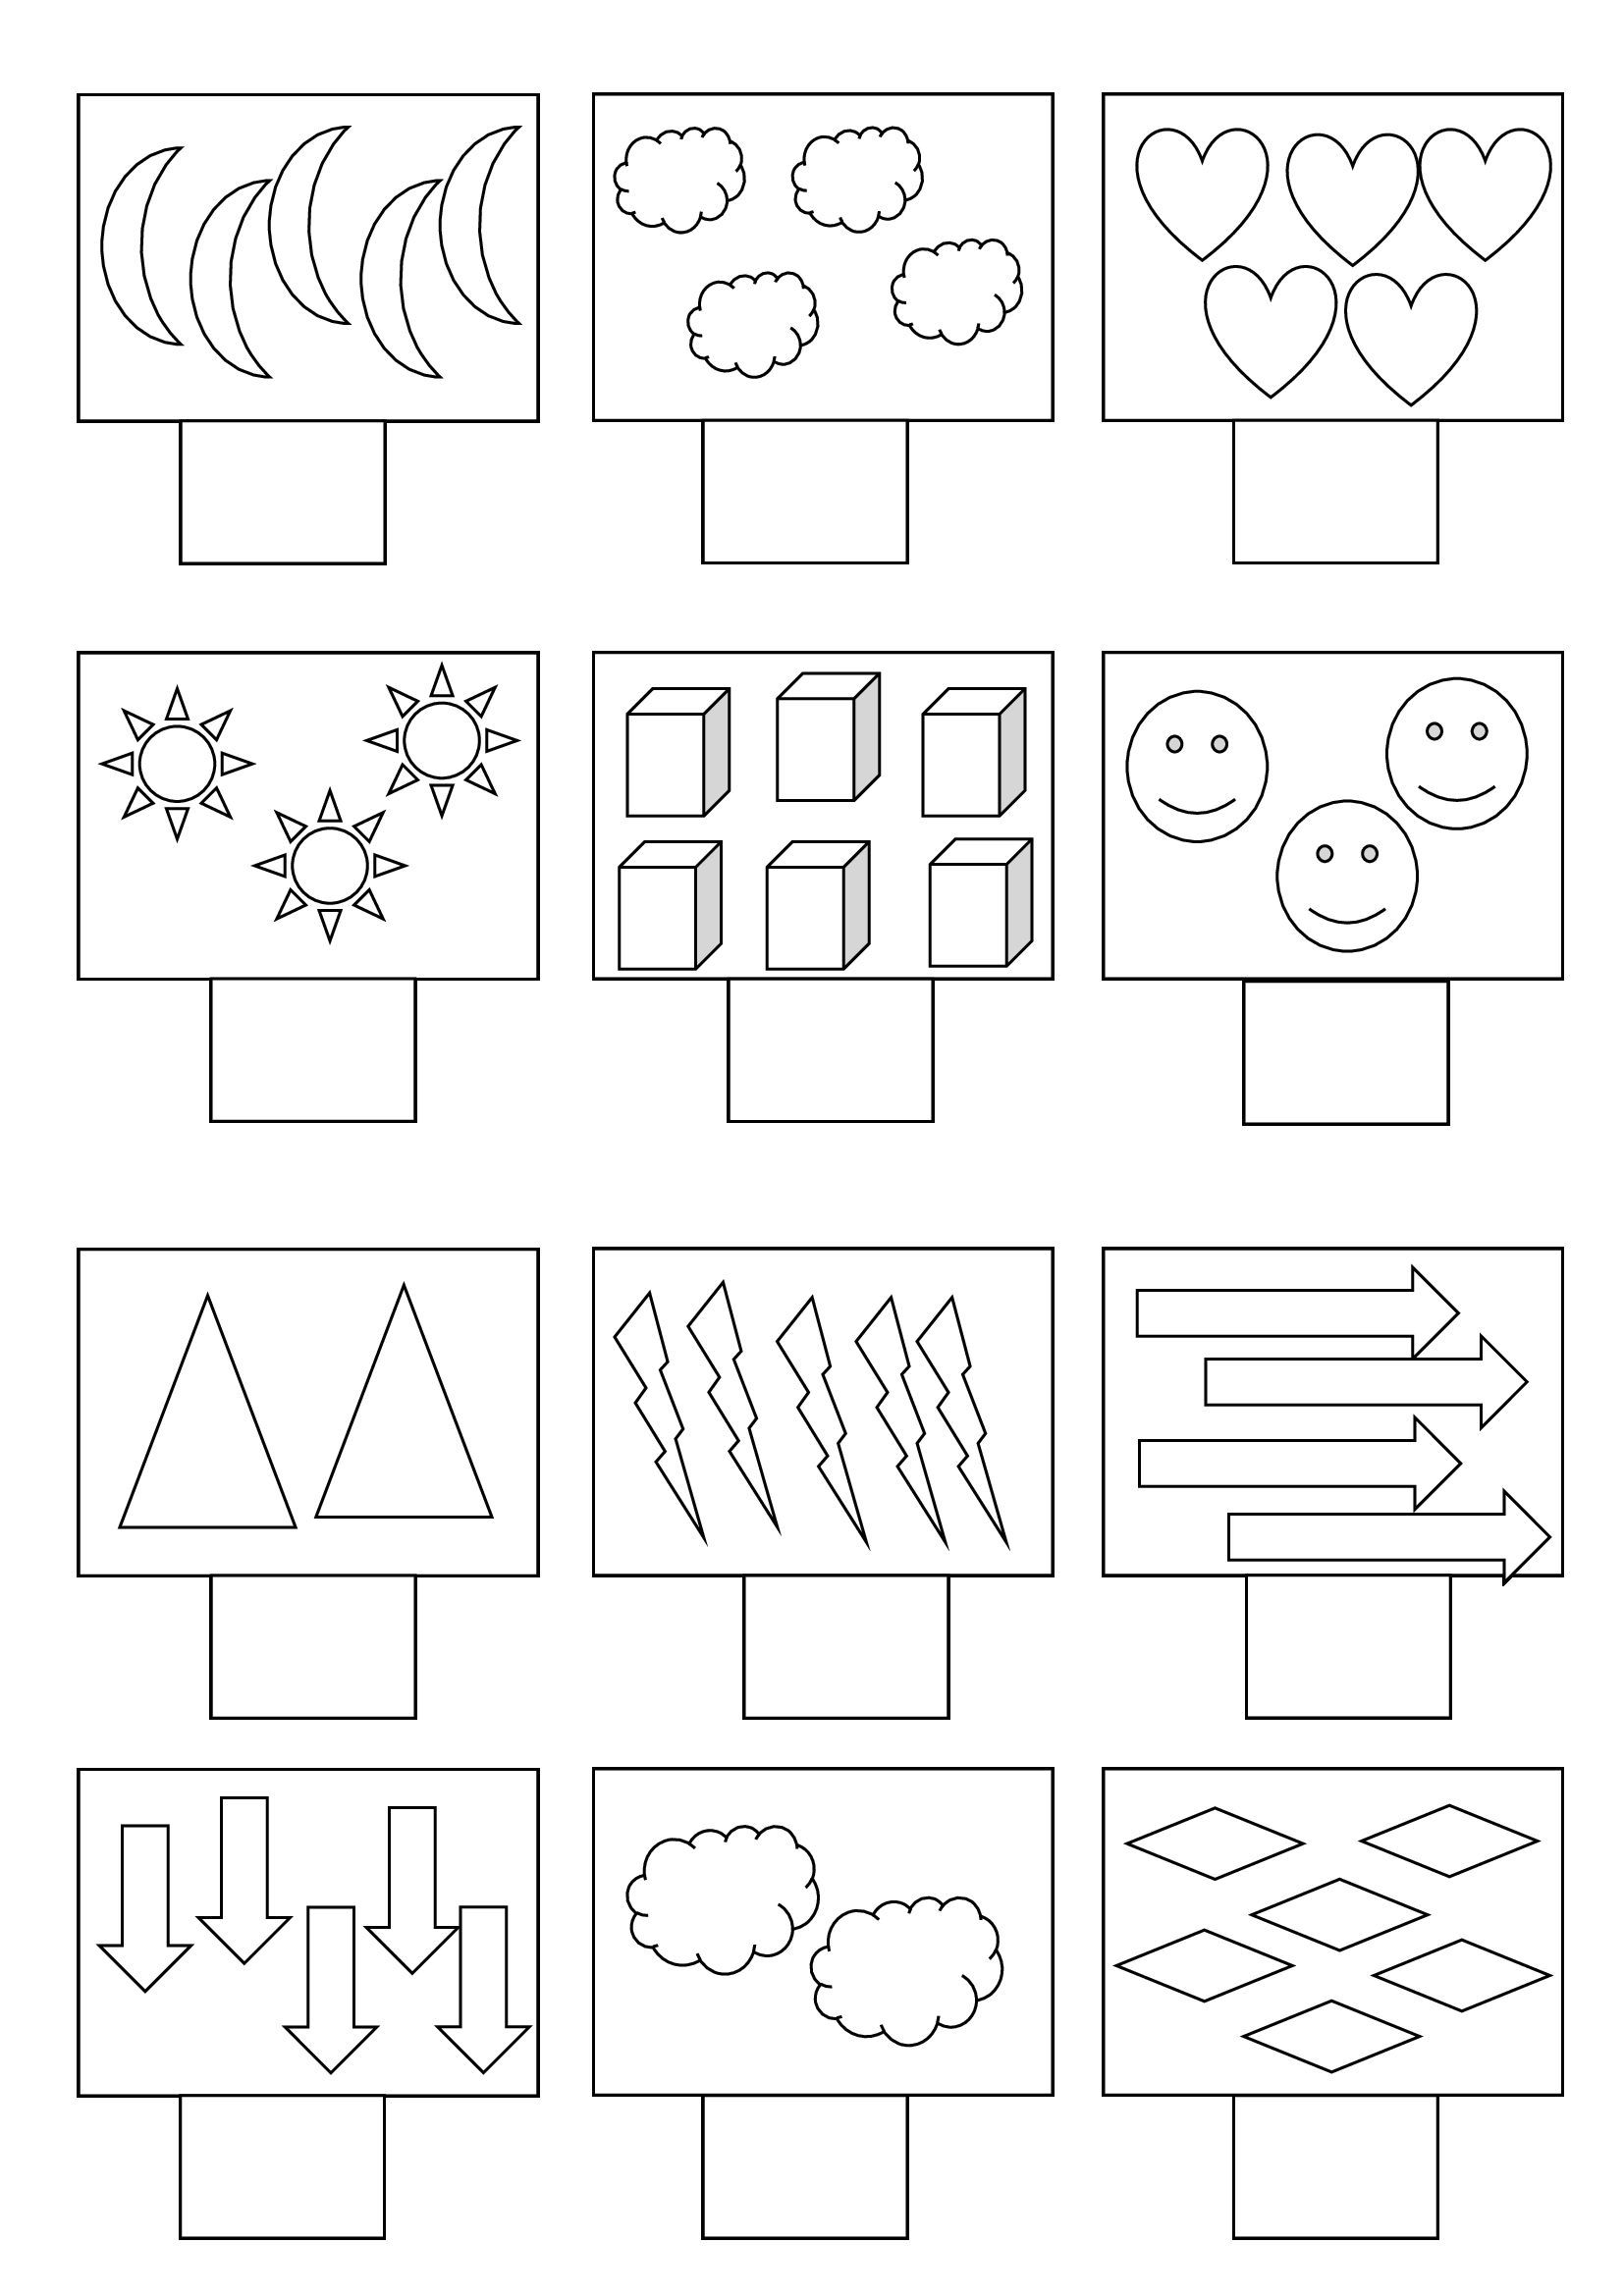 Fill Out The Ten Frames